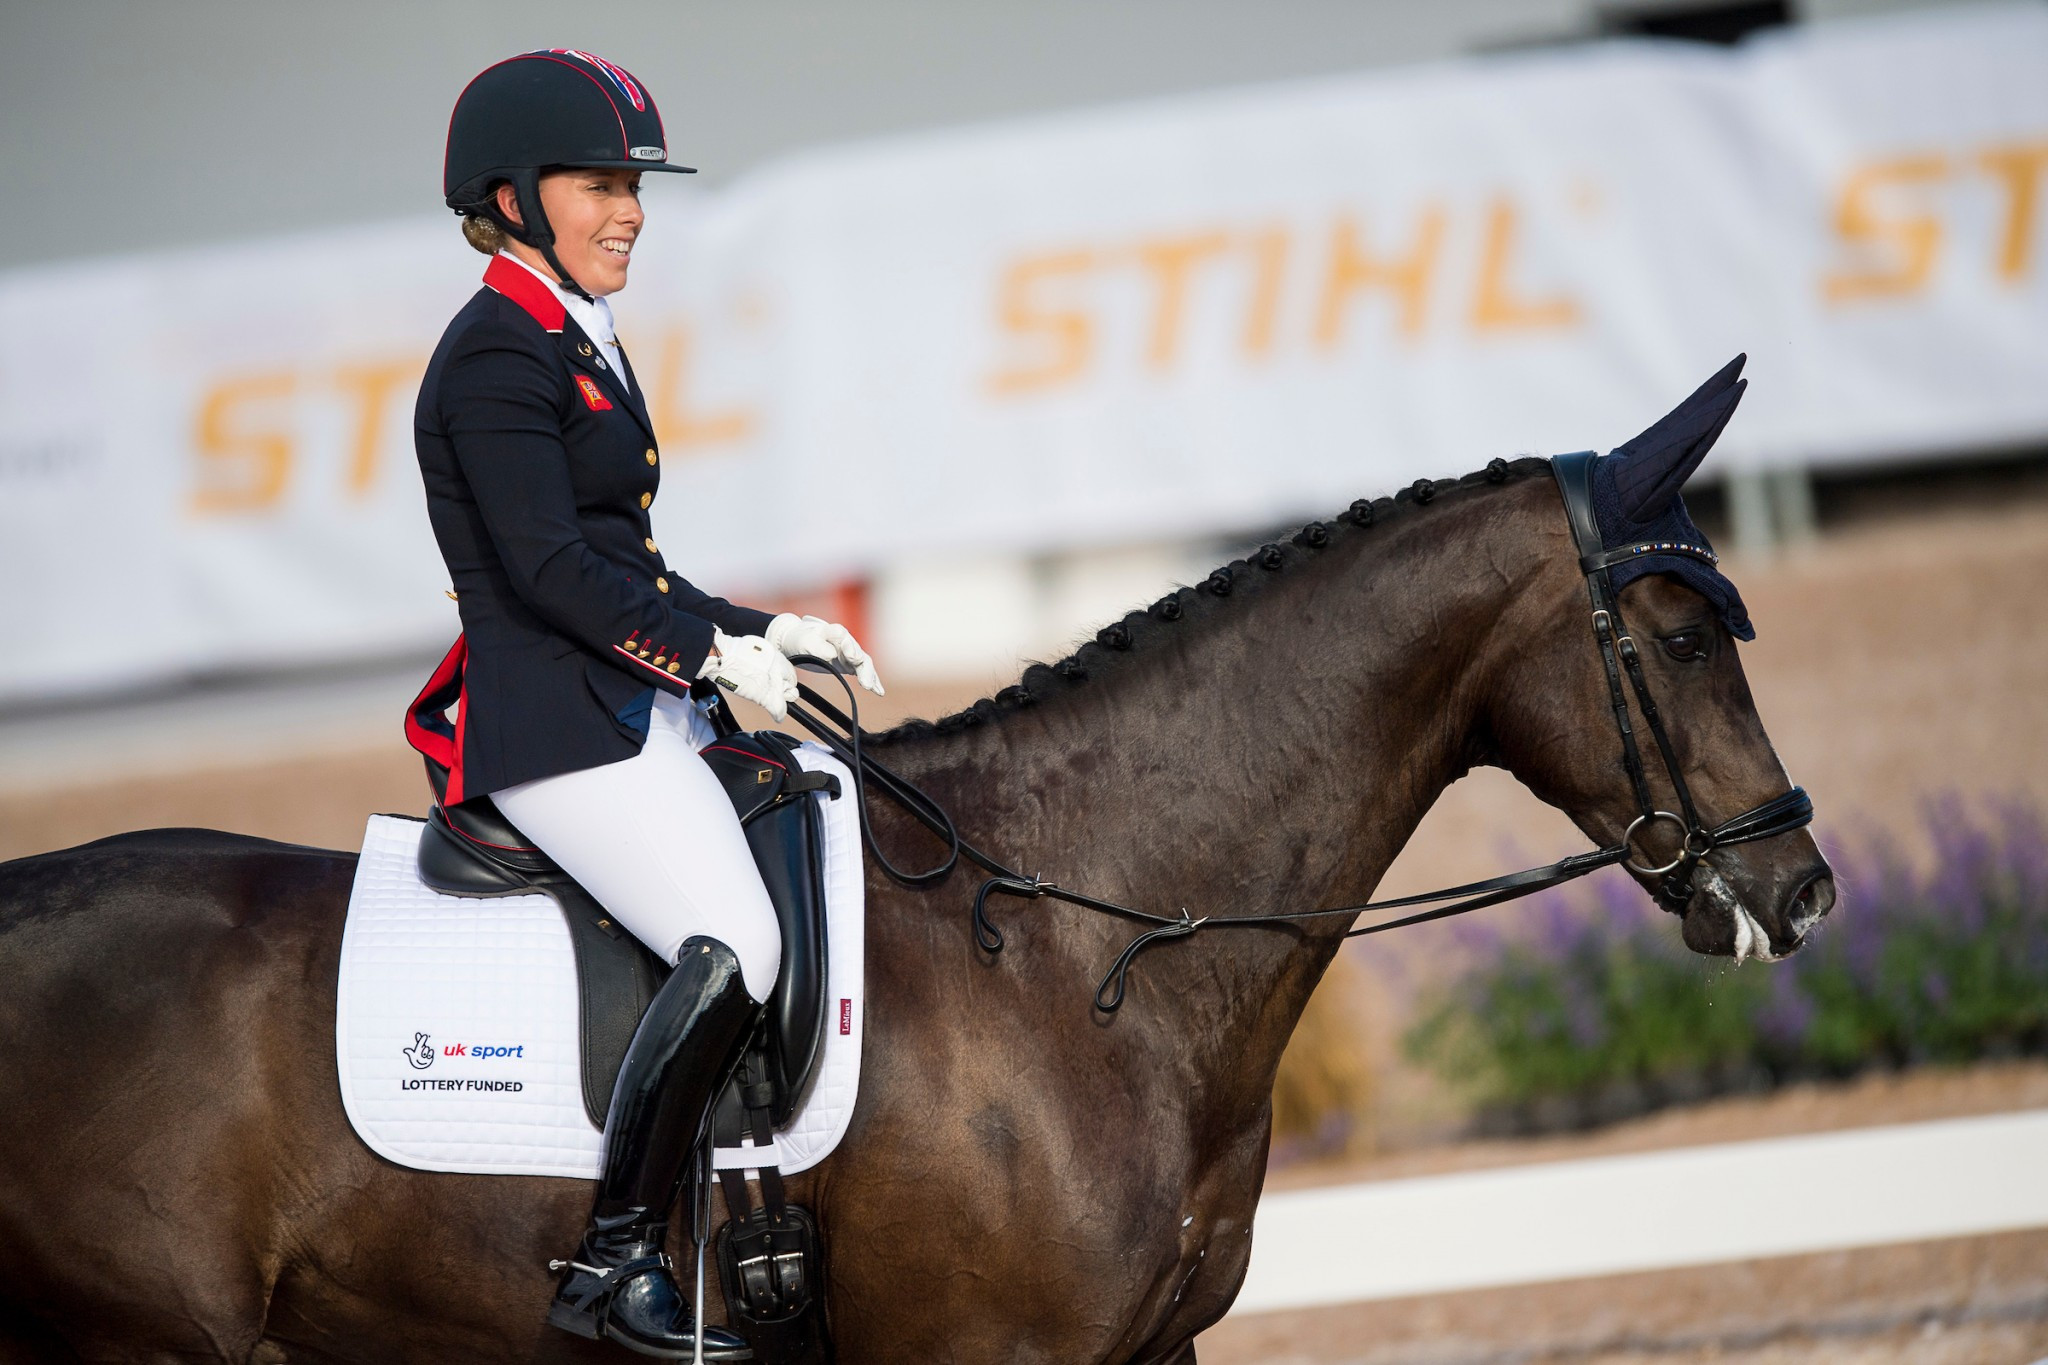 Sophie Wells looks pleased following her performance which helped Britain retain their team title ©British Equestrian Federation/Jon Stroud Media